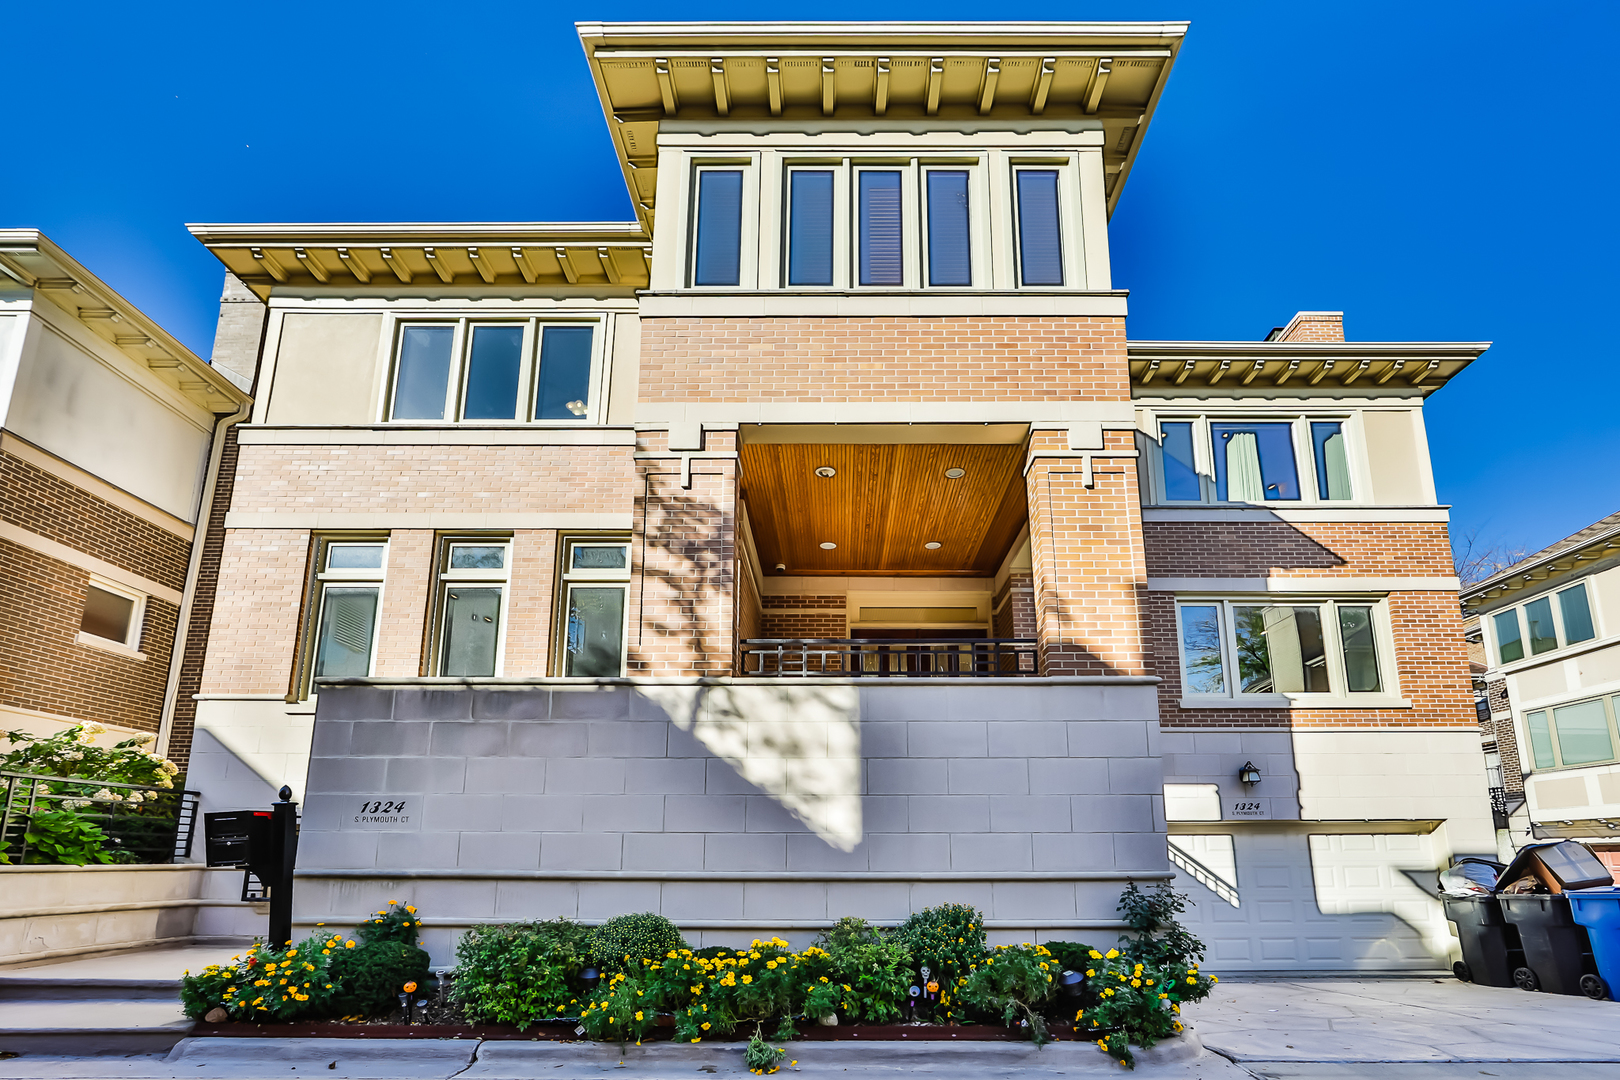 1324 SOUTH PLYMOUTH COURT, CHICAGO, IL 60605